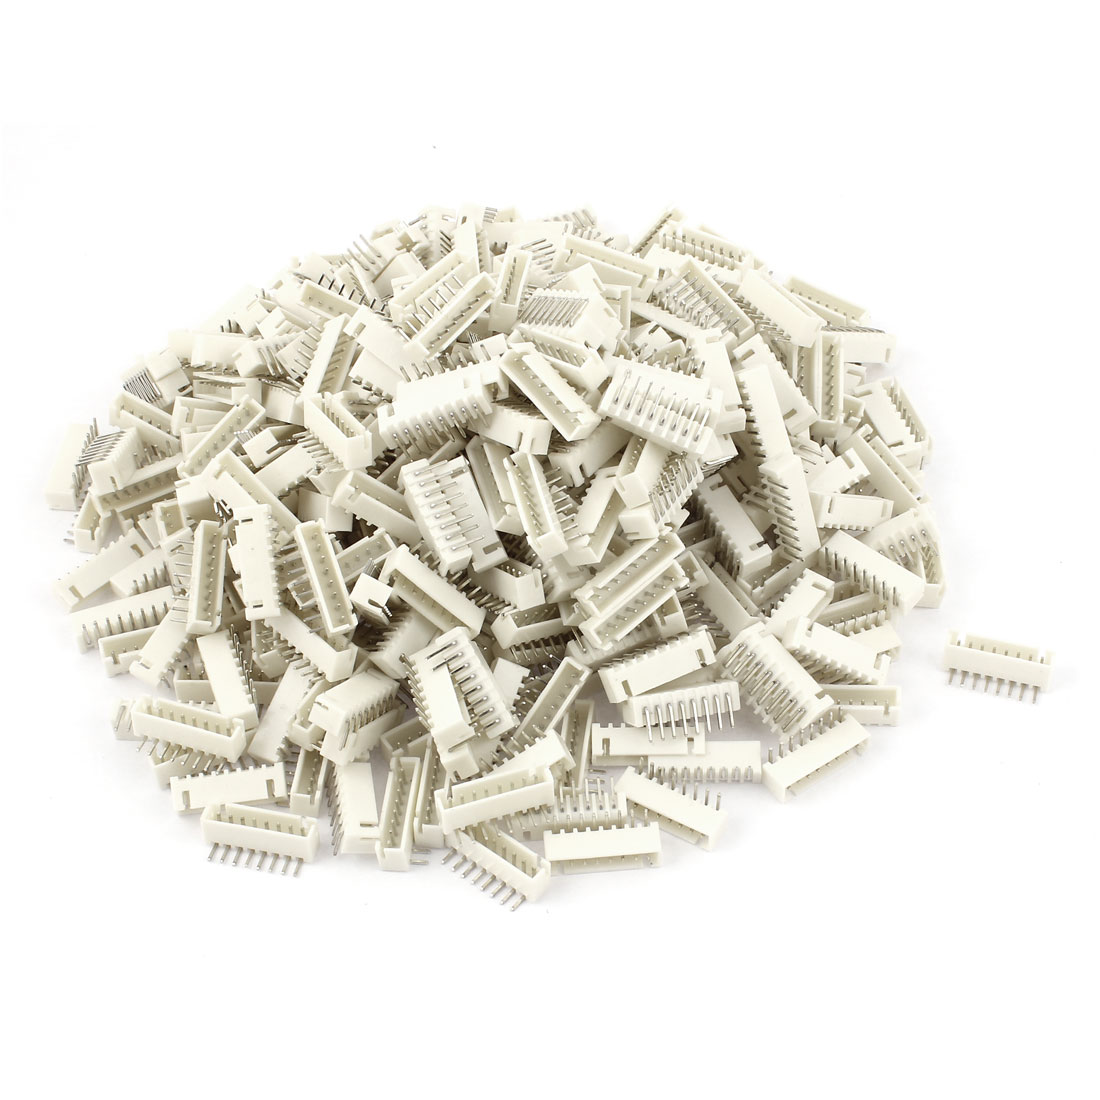 377pcs 2.54mm Pitch Right Angle 8 Pins XH Header Socket Male JST Connector